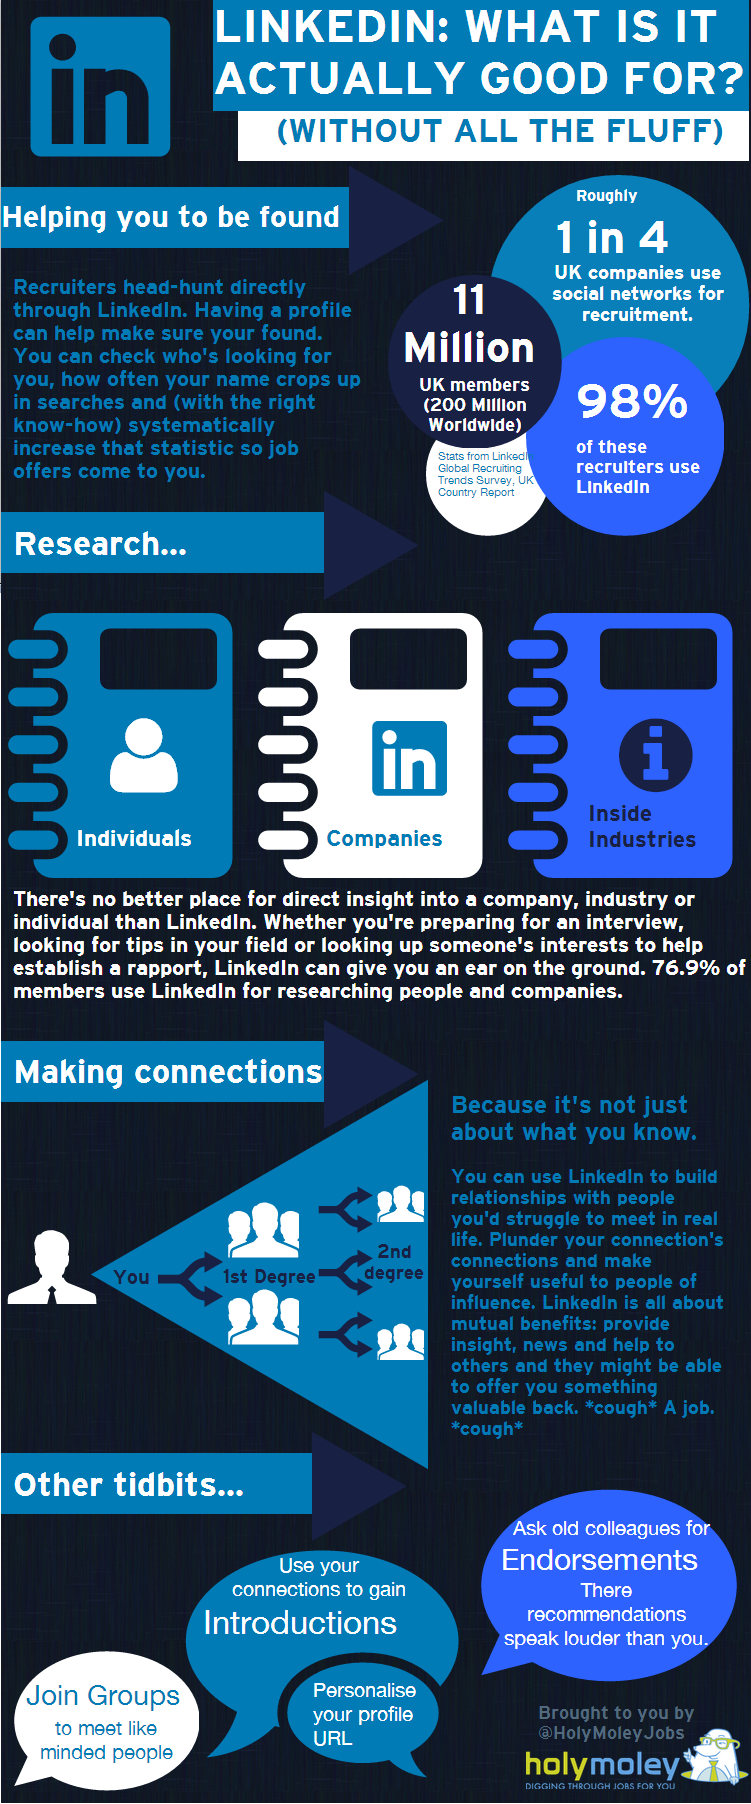 LinkedIn:  What Is It Actually Good For? by HolyMoley